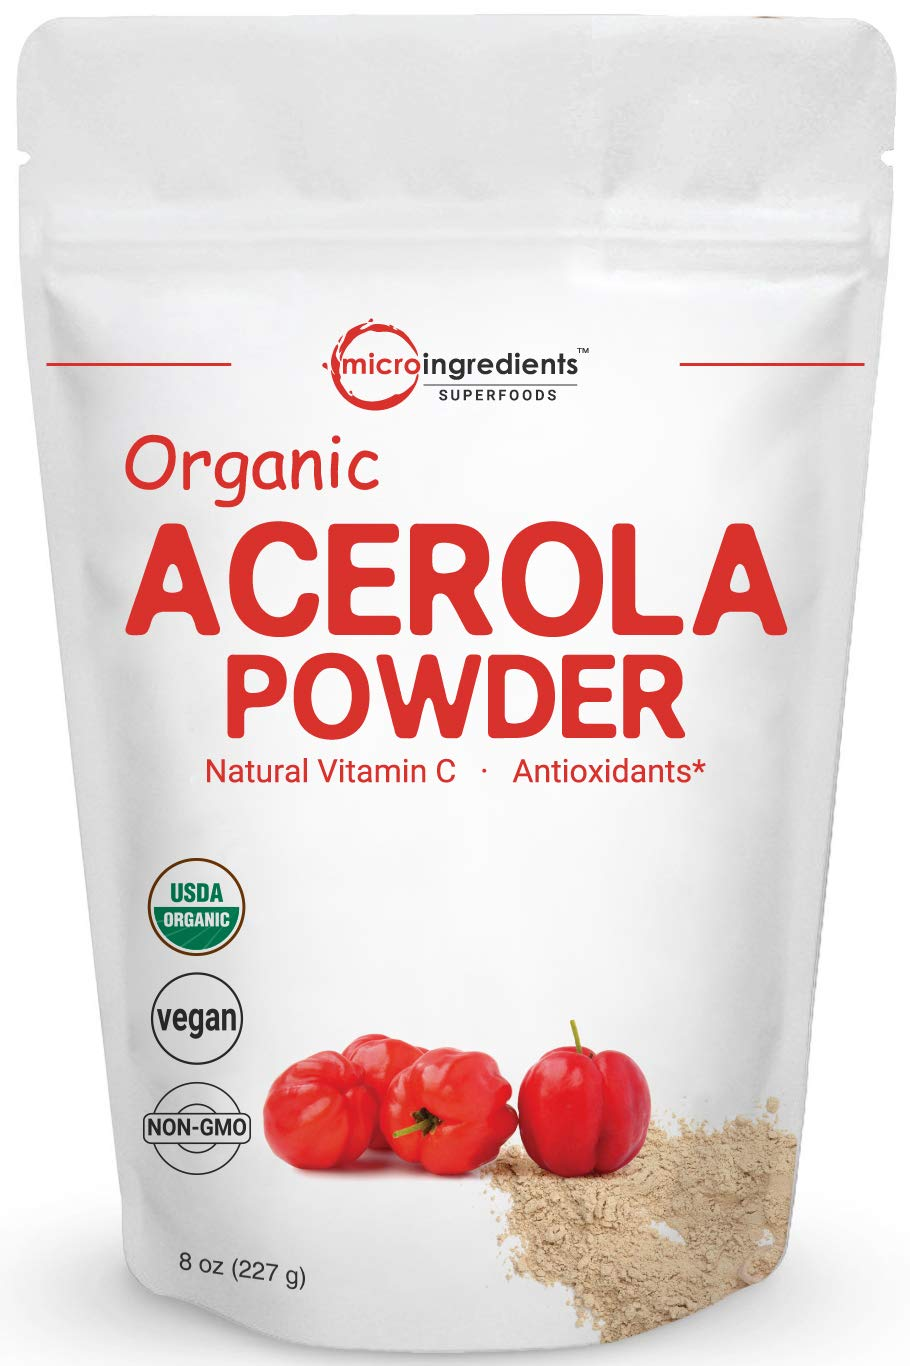 Pure Organic Acerola Cherries Extract Powder, Natural and Organic Vitamin C Powder, 8 Ounce, Best Superfoods for Beverage, Smoothie and Drinks, No GMOs and Vegan Friendly